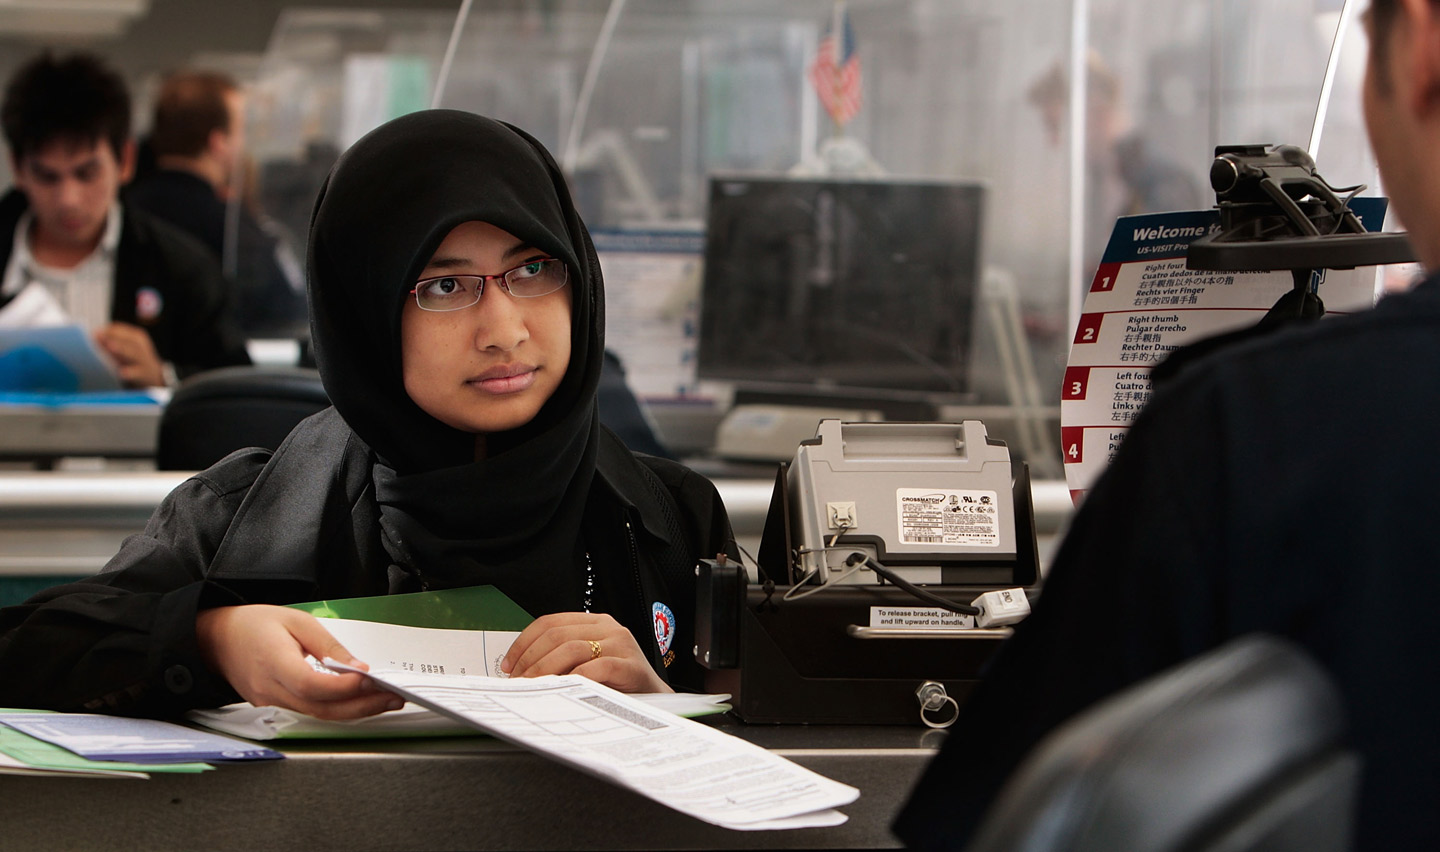 NEWARK, NJ - AUGUST 24:  A woman arriving from overseas gives paperwork to a border control officer  upon arriving into Newark International Airport August 24, 2009 in Newark, New Jersey.   Officials with U.S. Customs and Border Protection are introducing are introducing the Global Entry program, which allows pre-screening and approval of travelers and faster trips through customs and passport lines upon arriving into the United States.  (Photo by Chris Hondros/Getty Images)